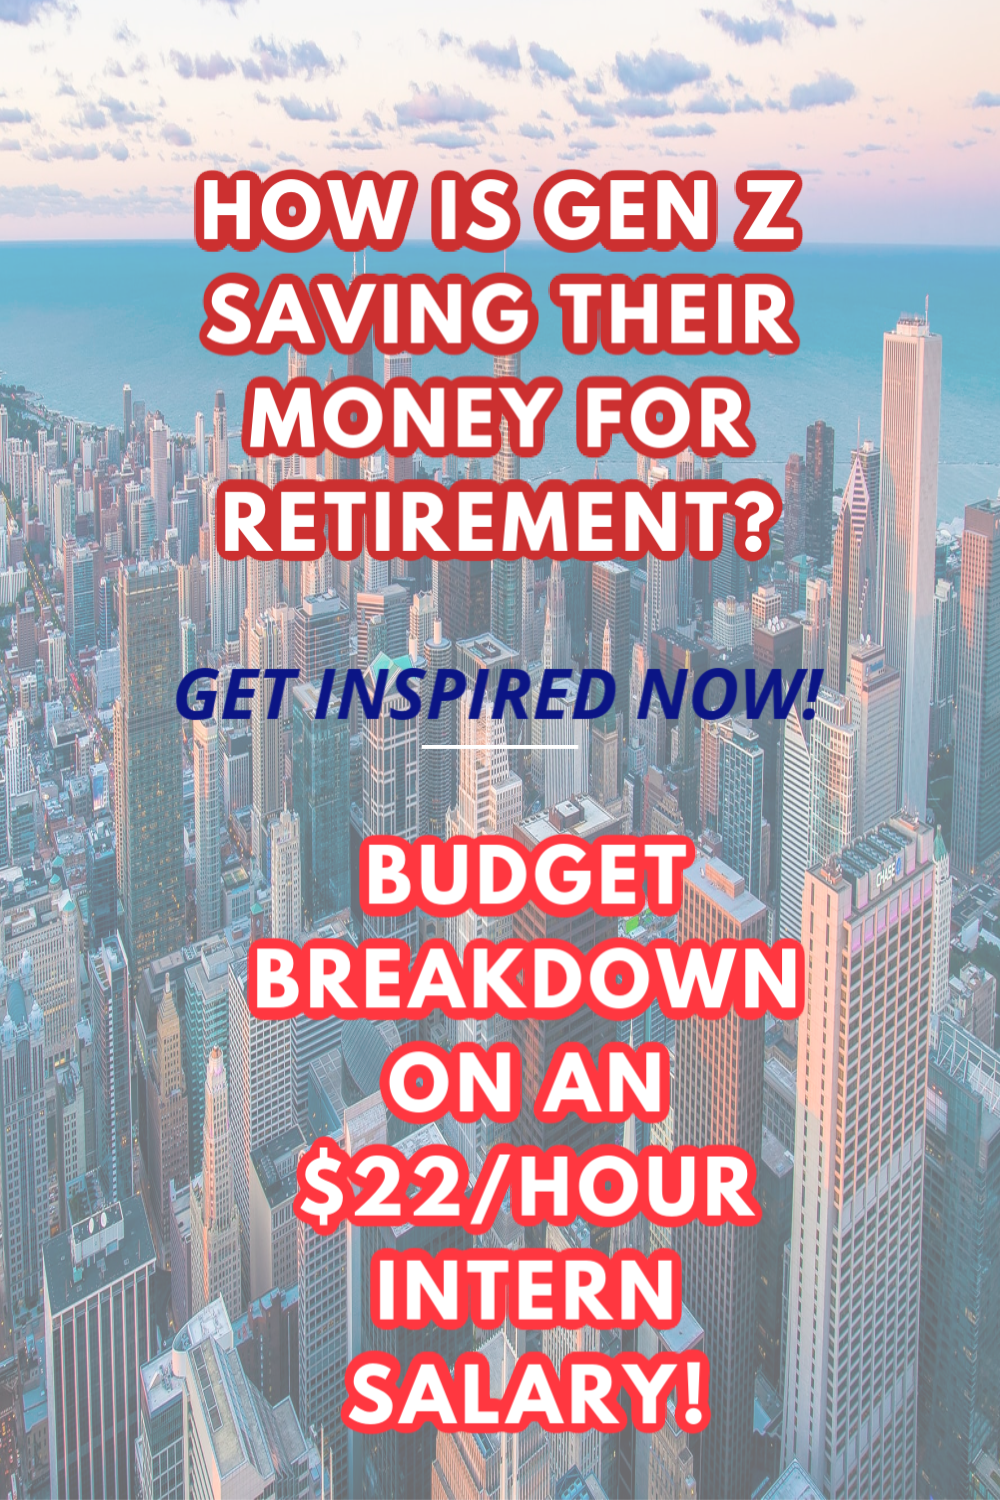 Inspiration for college students and interns on how to maximize savings for big purchases and retirement.   [CLICK THE YOUTUBE LINK NOW!] #startnow #moneysavingtips #saving money #savingsplan #passiveincome #financialplanning #frugalliving #moneysavers #college #salary #intern #fire #financialindependence